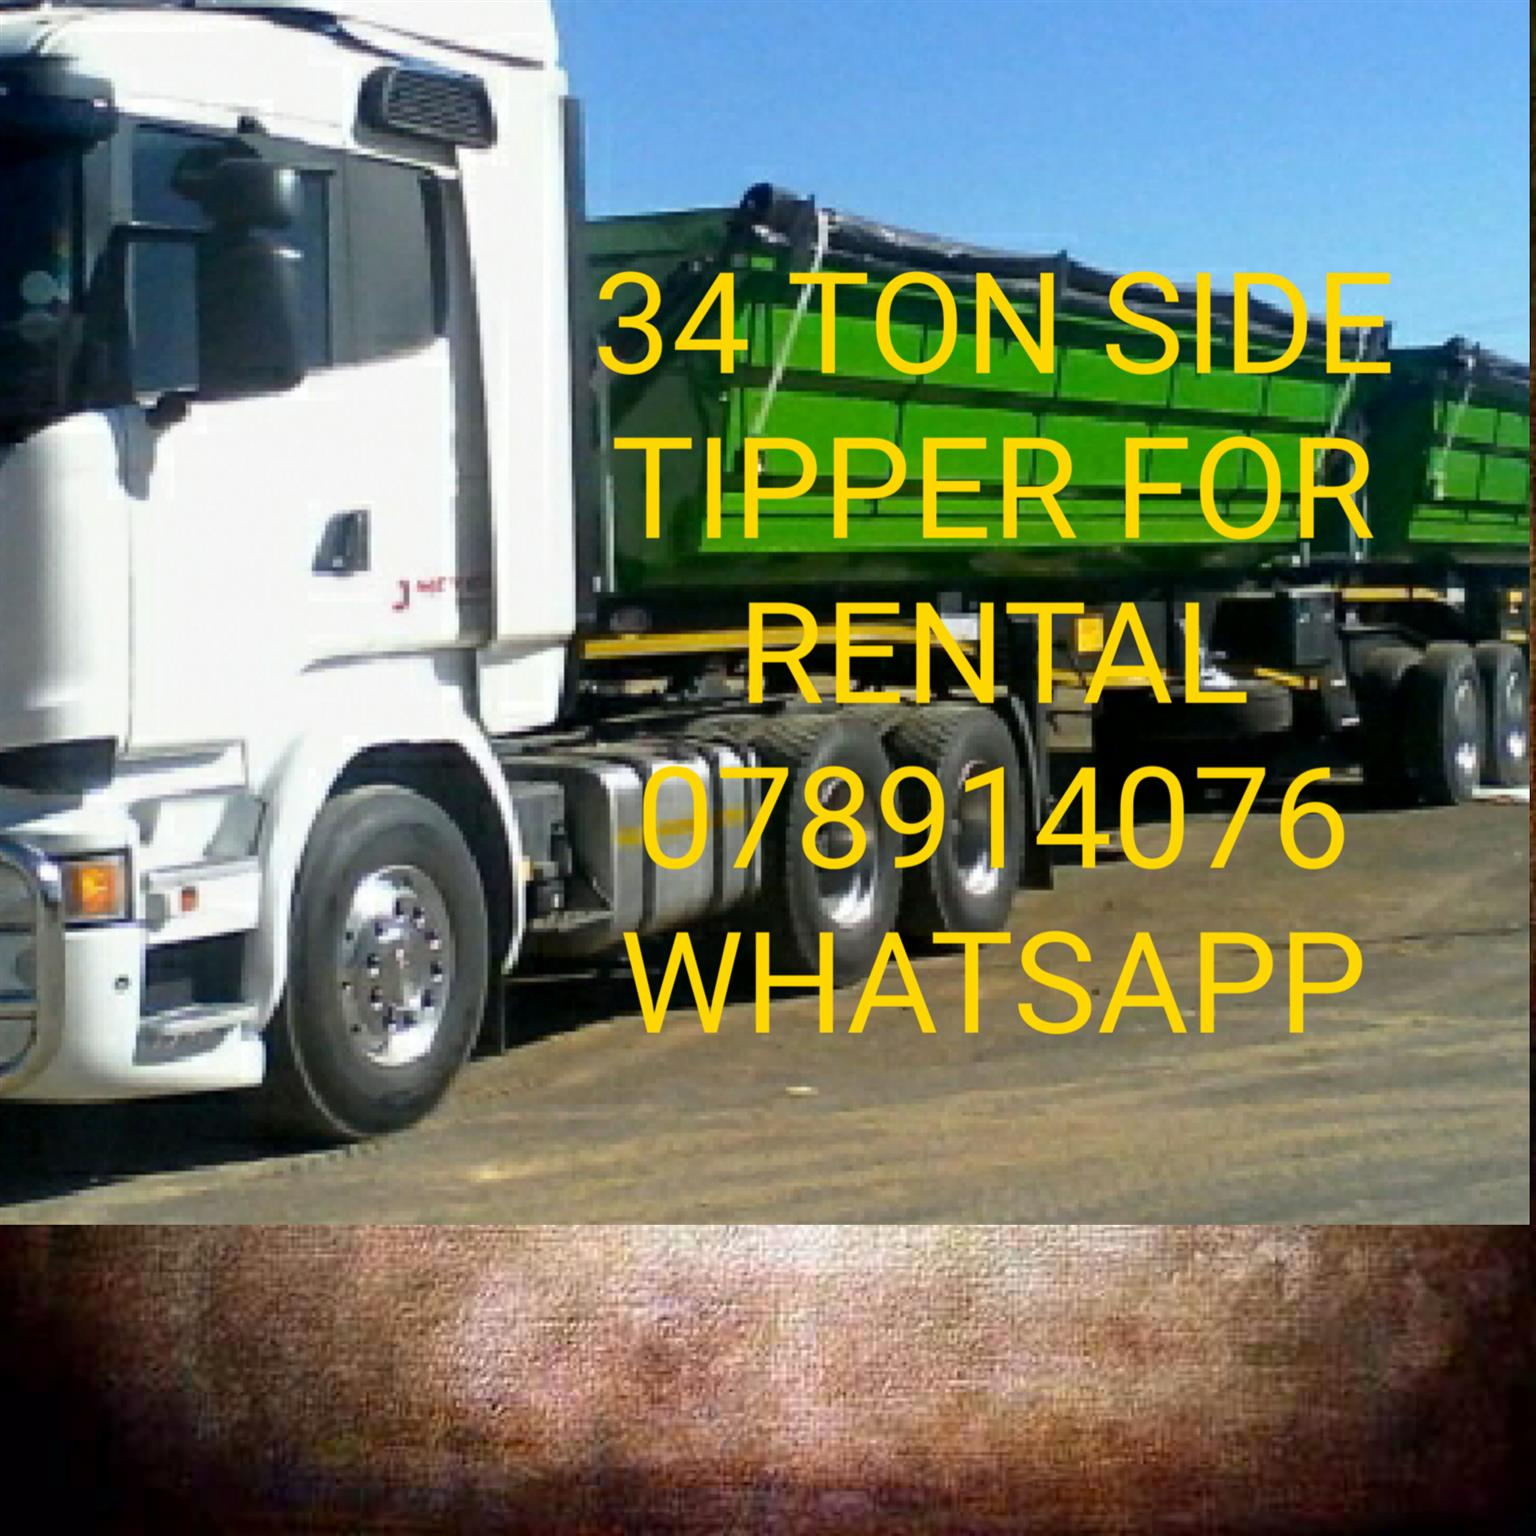 34 TON SIDE TIPPER FOR RENTALS